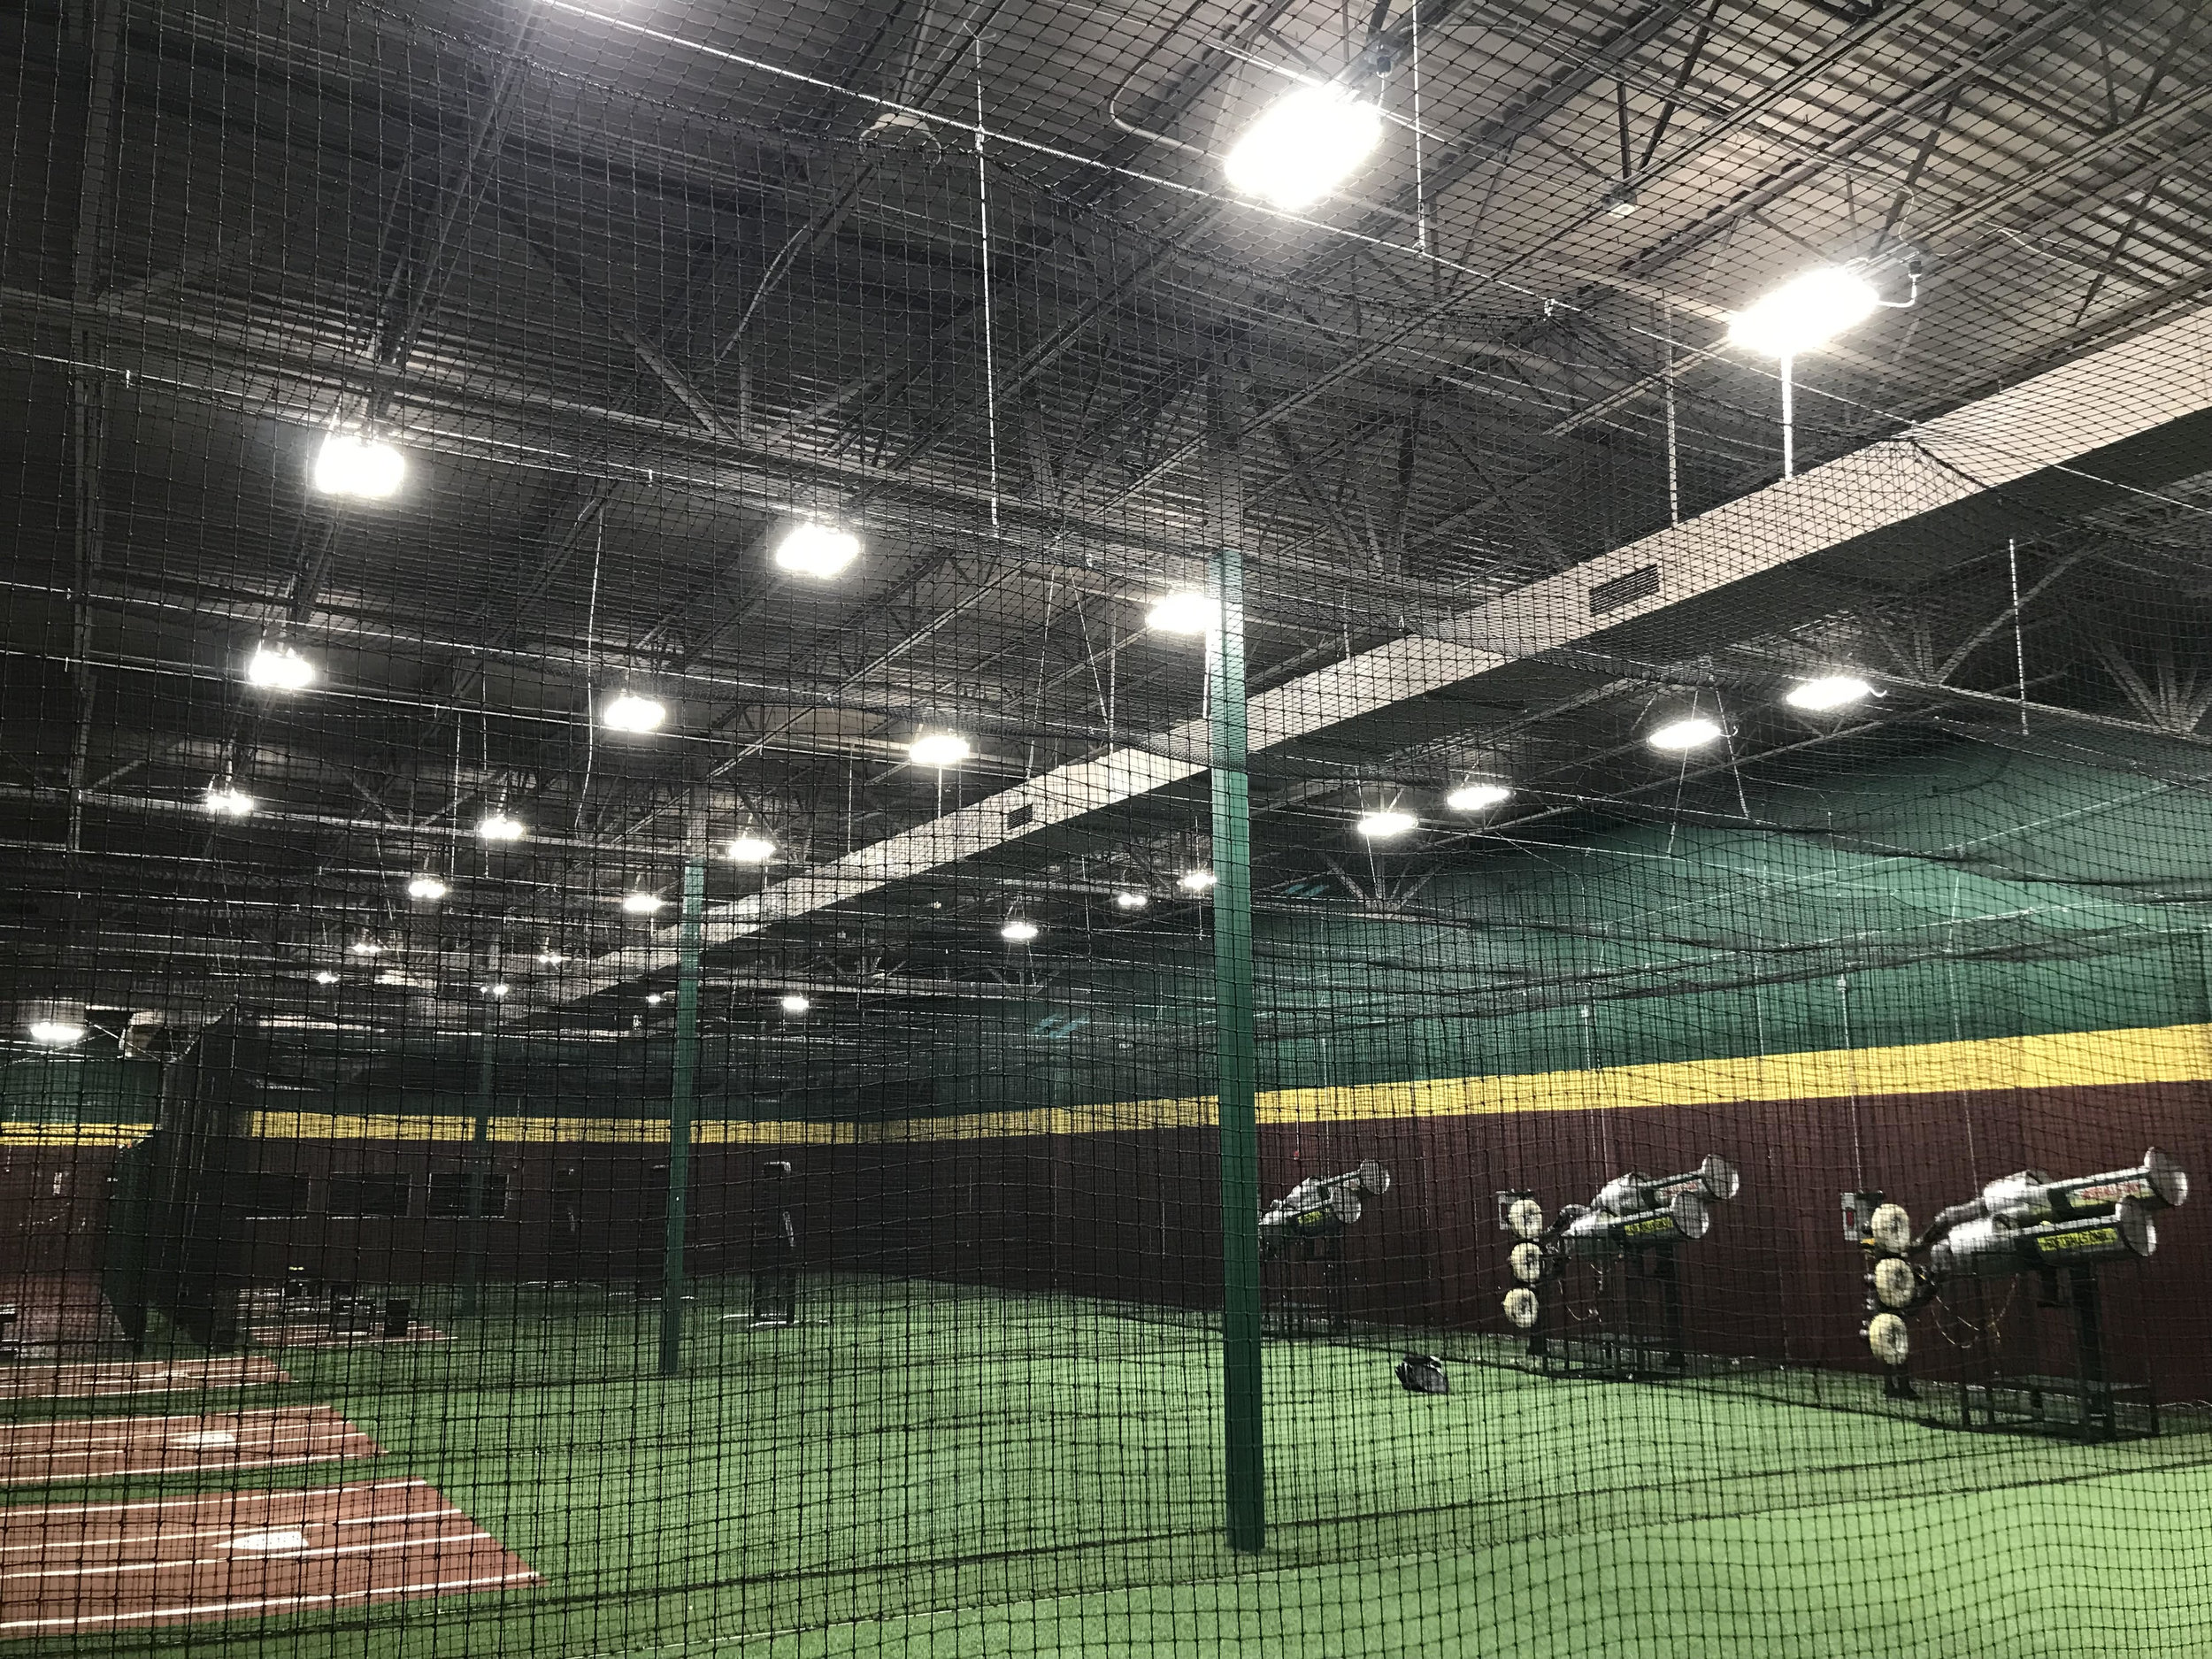 Lication More Than 100 Foot Candles Of Light Throughout The Batting Cage Areas Flex Lighting Solutions High Performance Bay